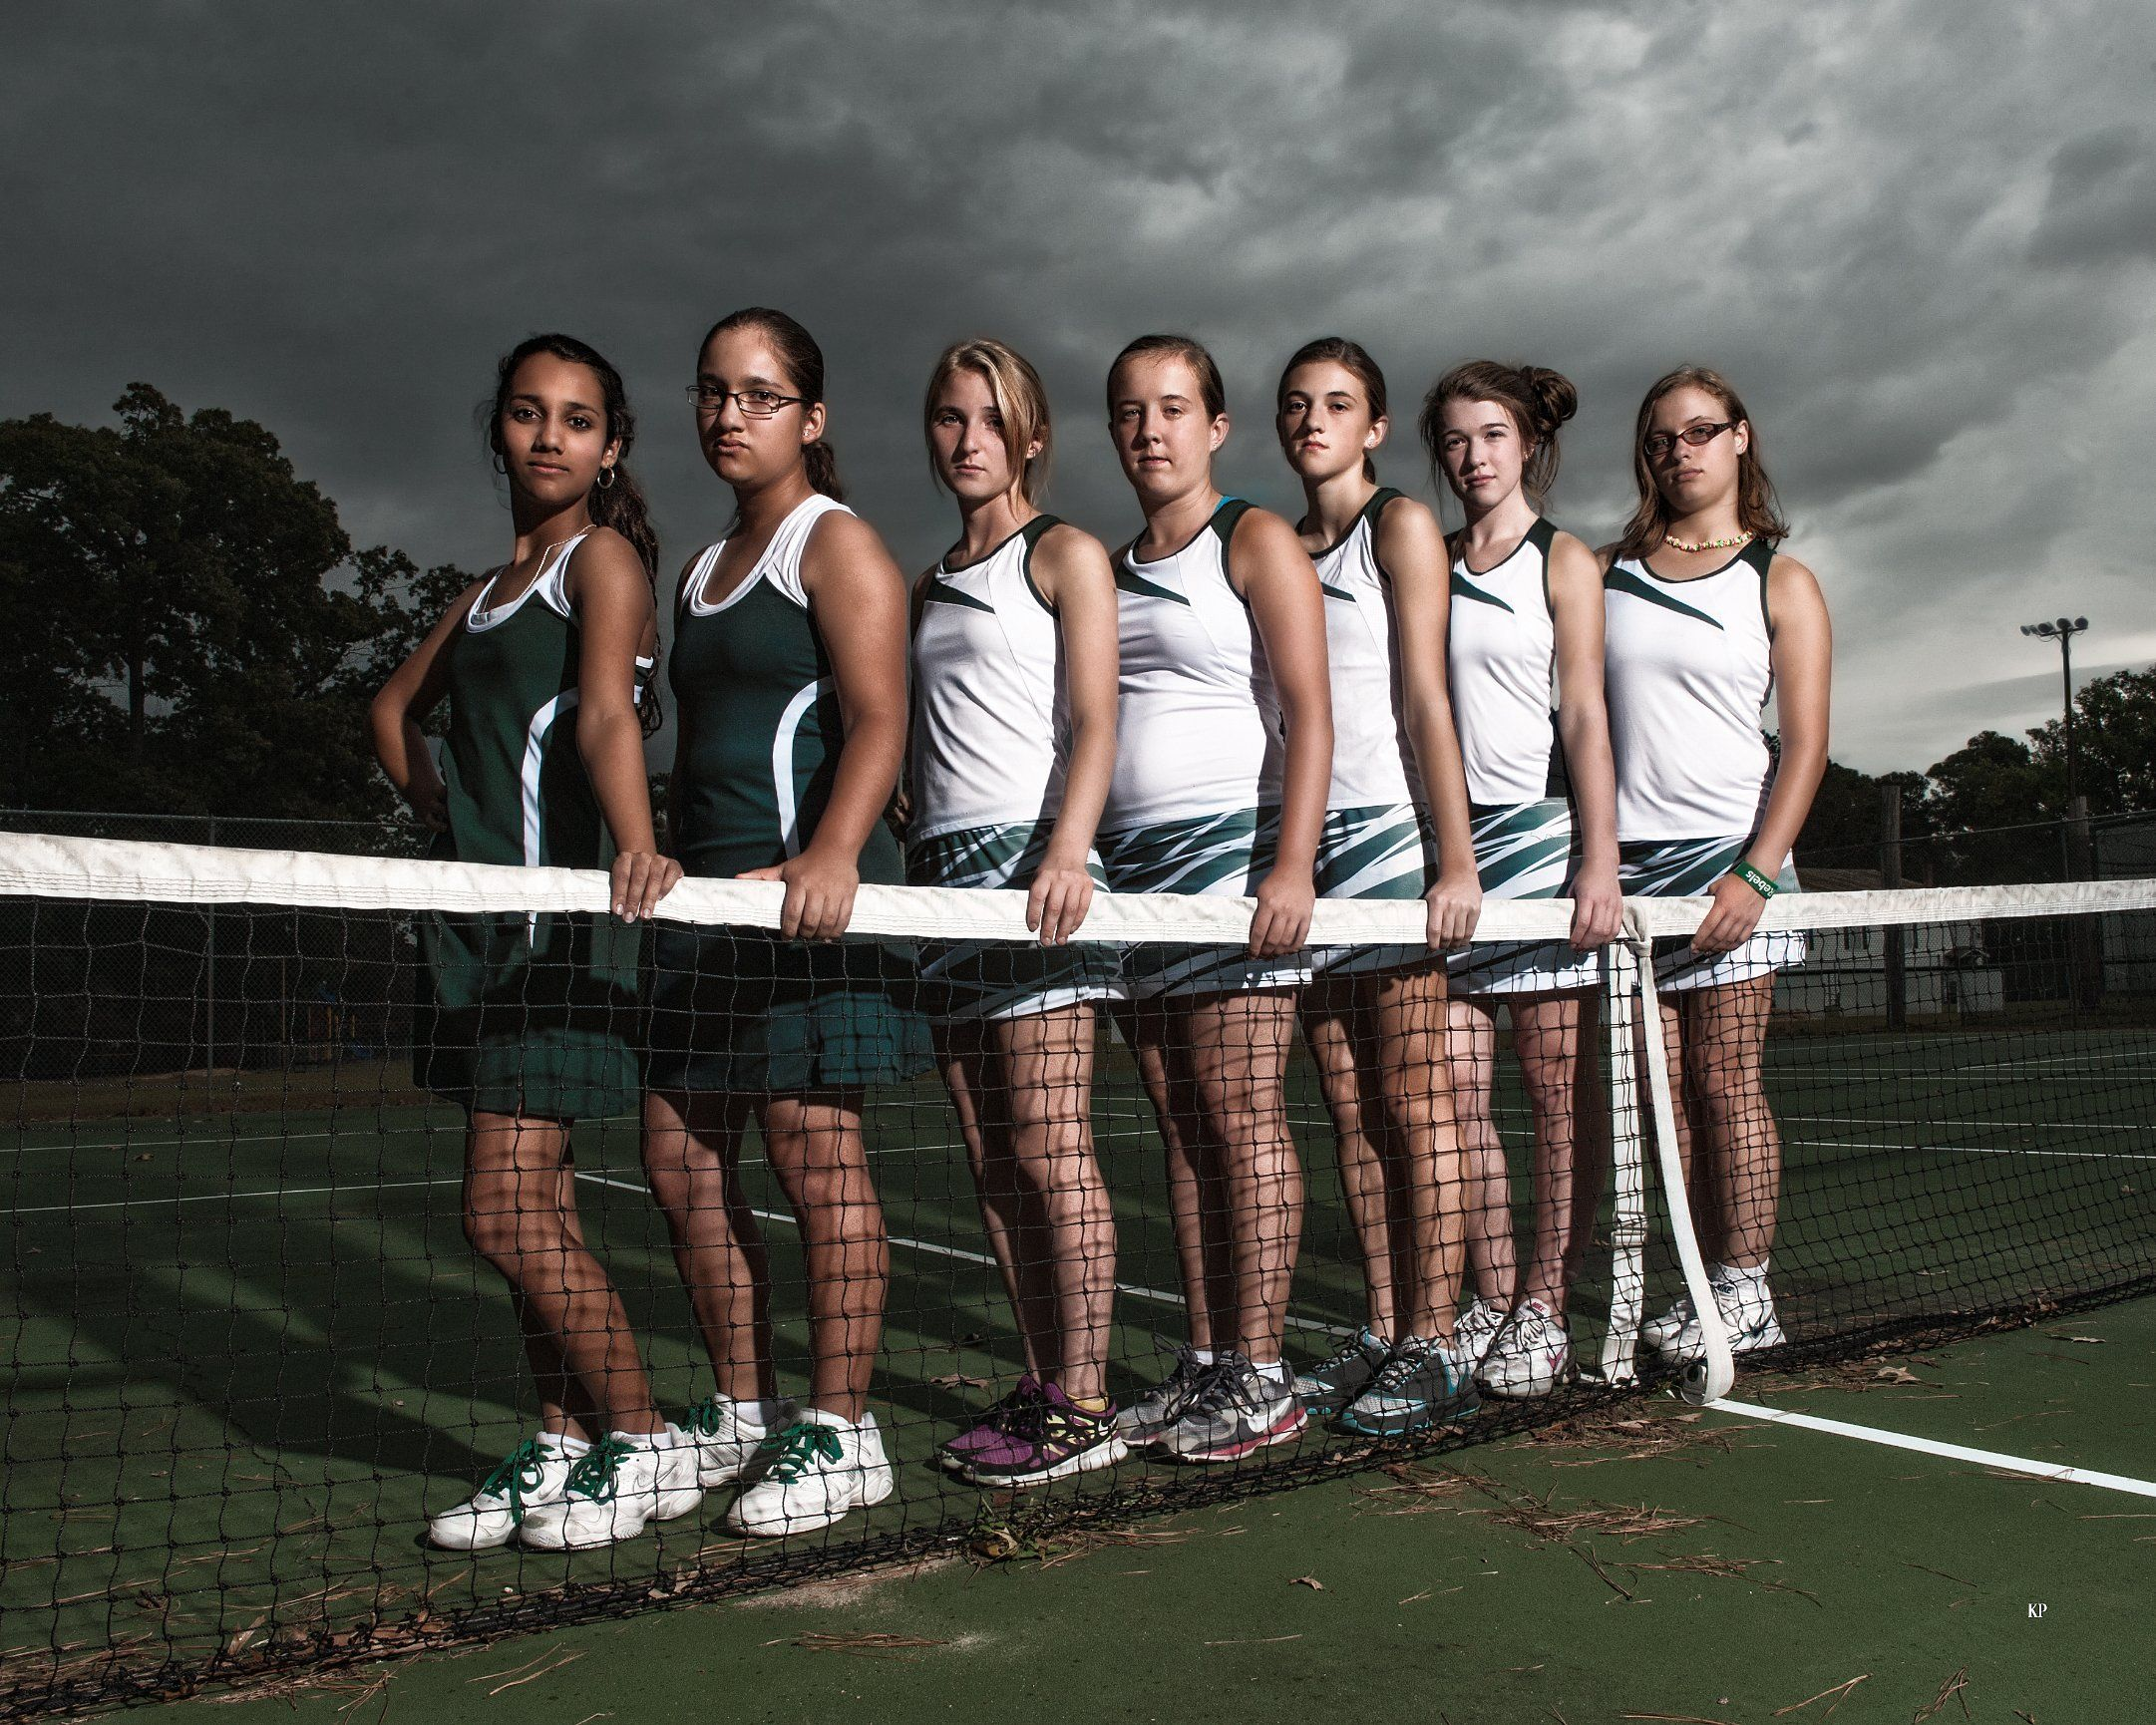 Girls Tennis Team North Duplin High School Net Clouds Sports Portrait Sport Portraits Tennis Team Volleyball Senior Pictures